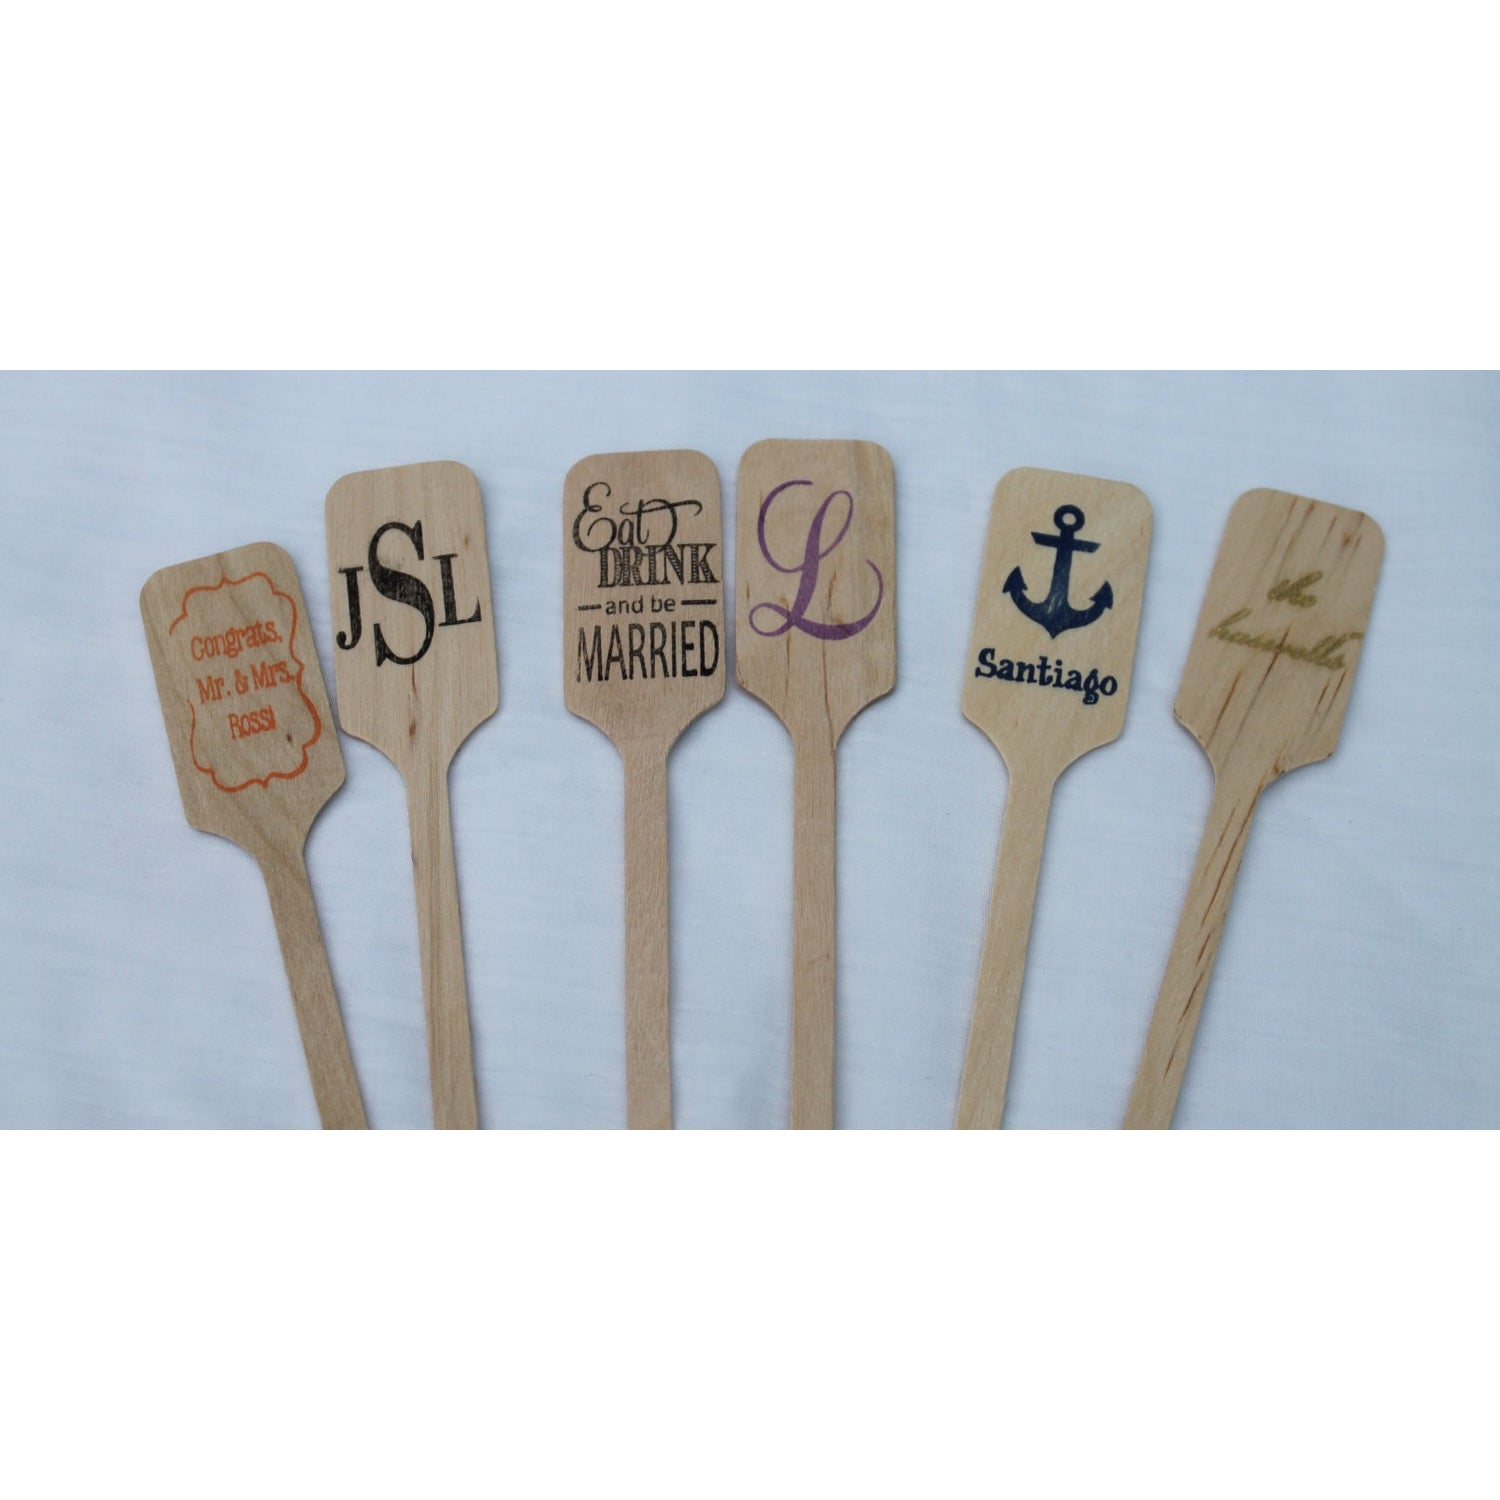 Keep Calm and Drink Up - Wooden Coffee or Drink Stirrers Great for Weddings - Tulle and Twig